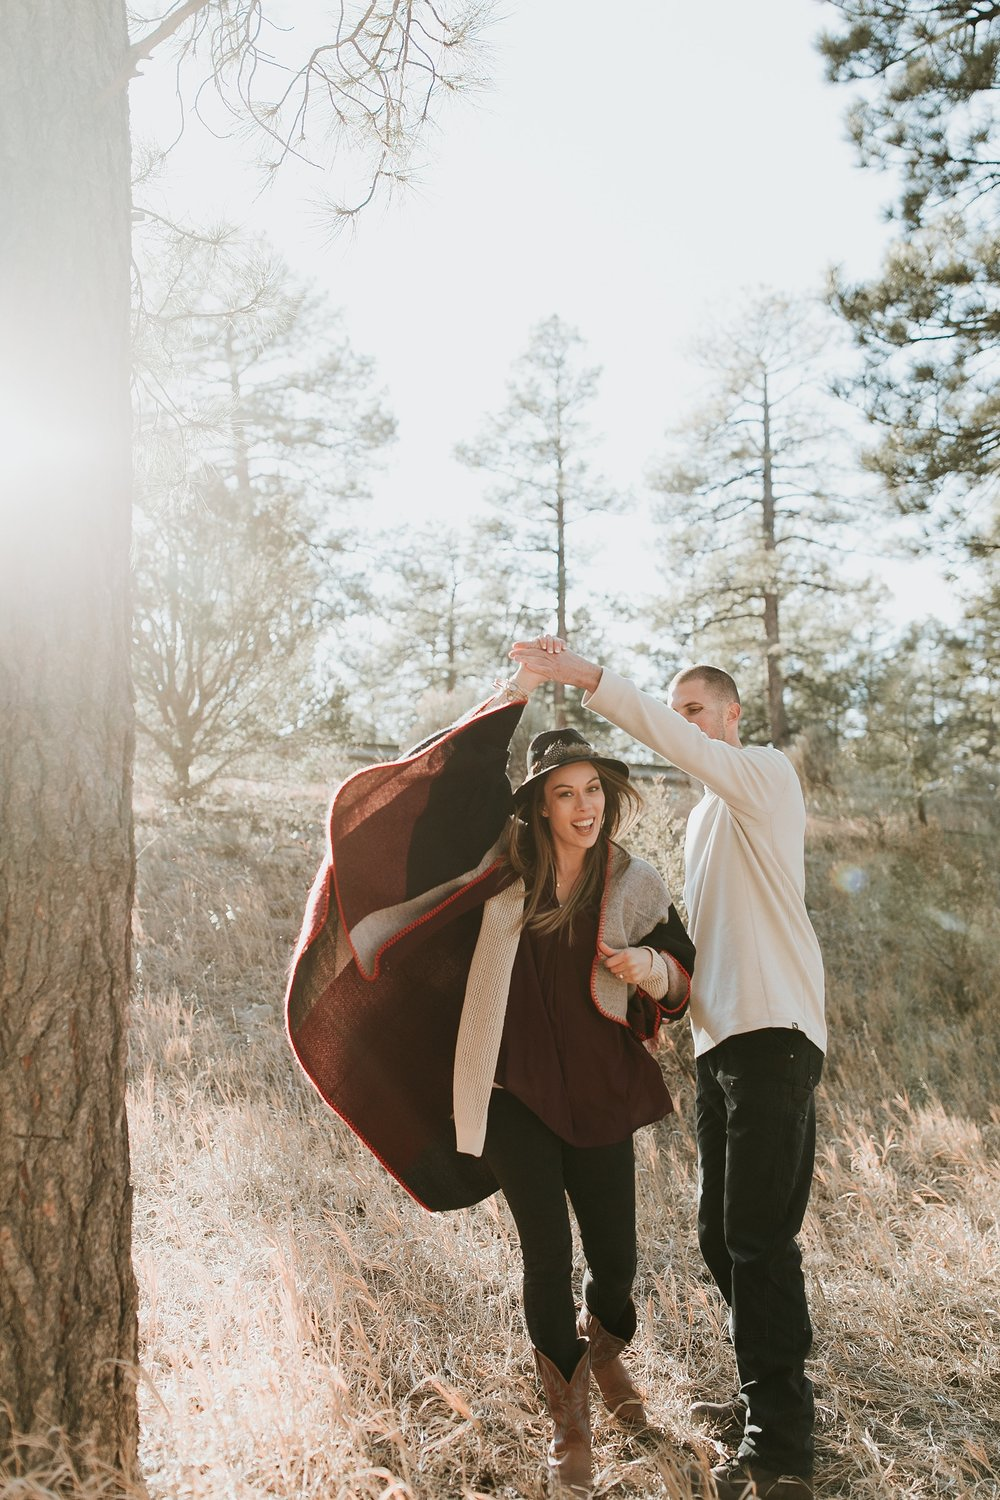 Alicia+lucia+photography+-+albuquerque+wedding+photographer+-+santa+fe+wedding+photography+-+new+mexico+wedding+photographer+-+albuquerque+winter+engagement+session_0043.jpg